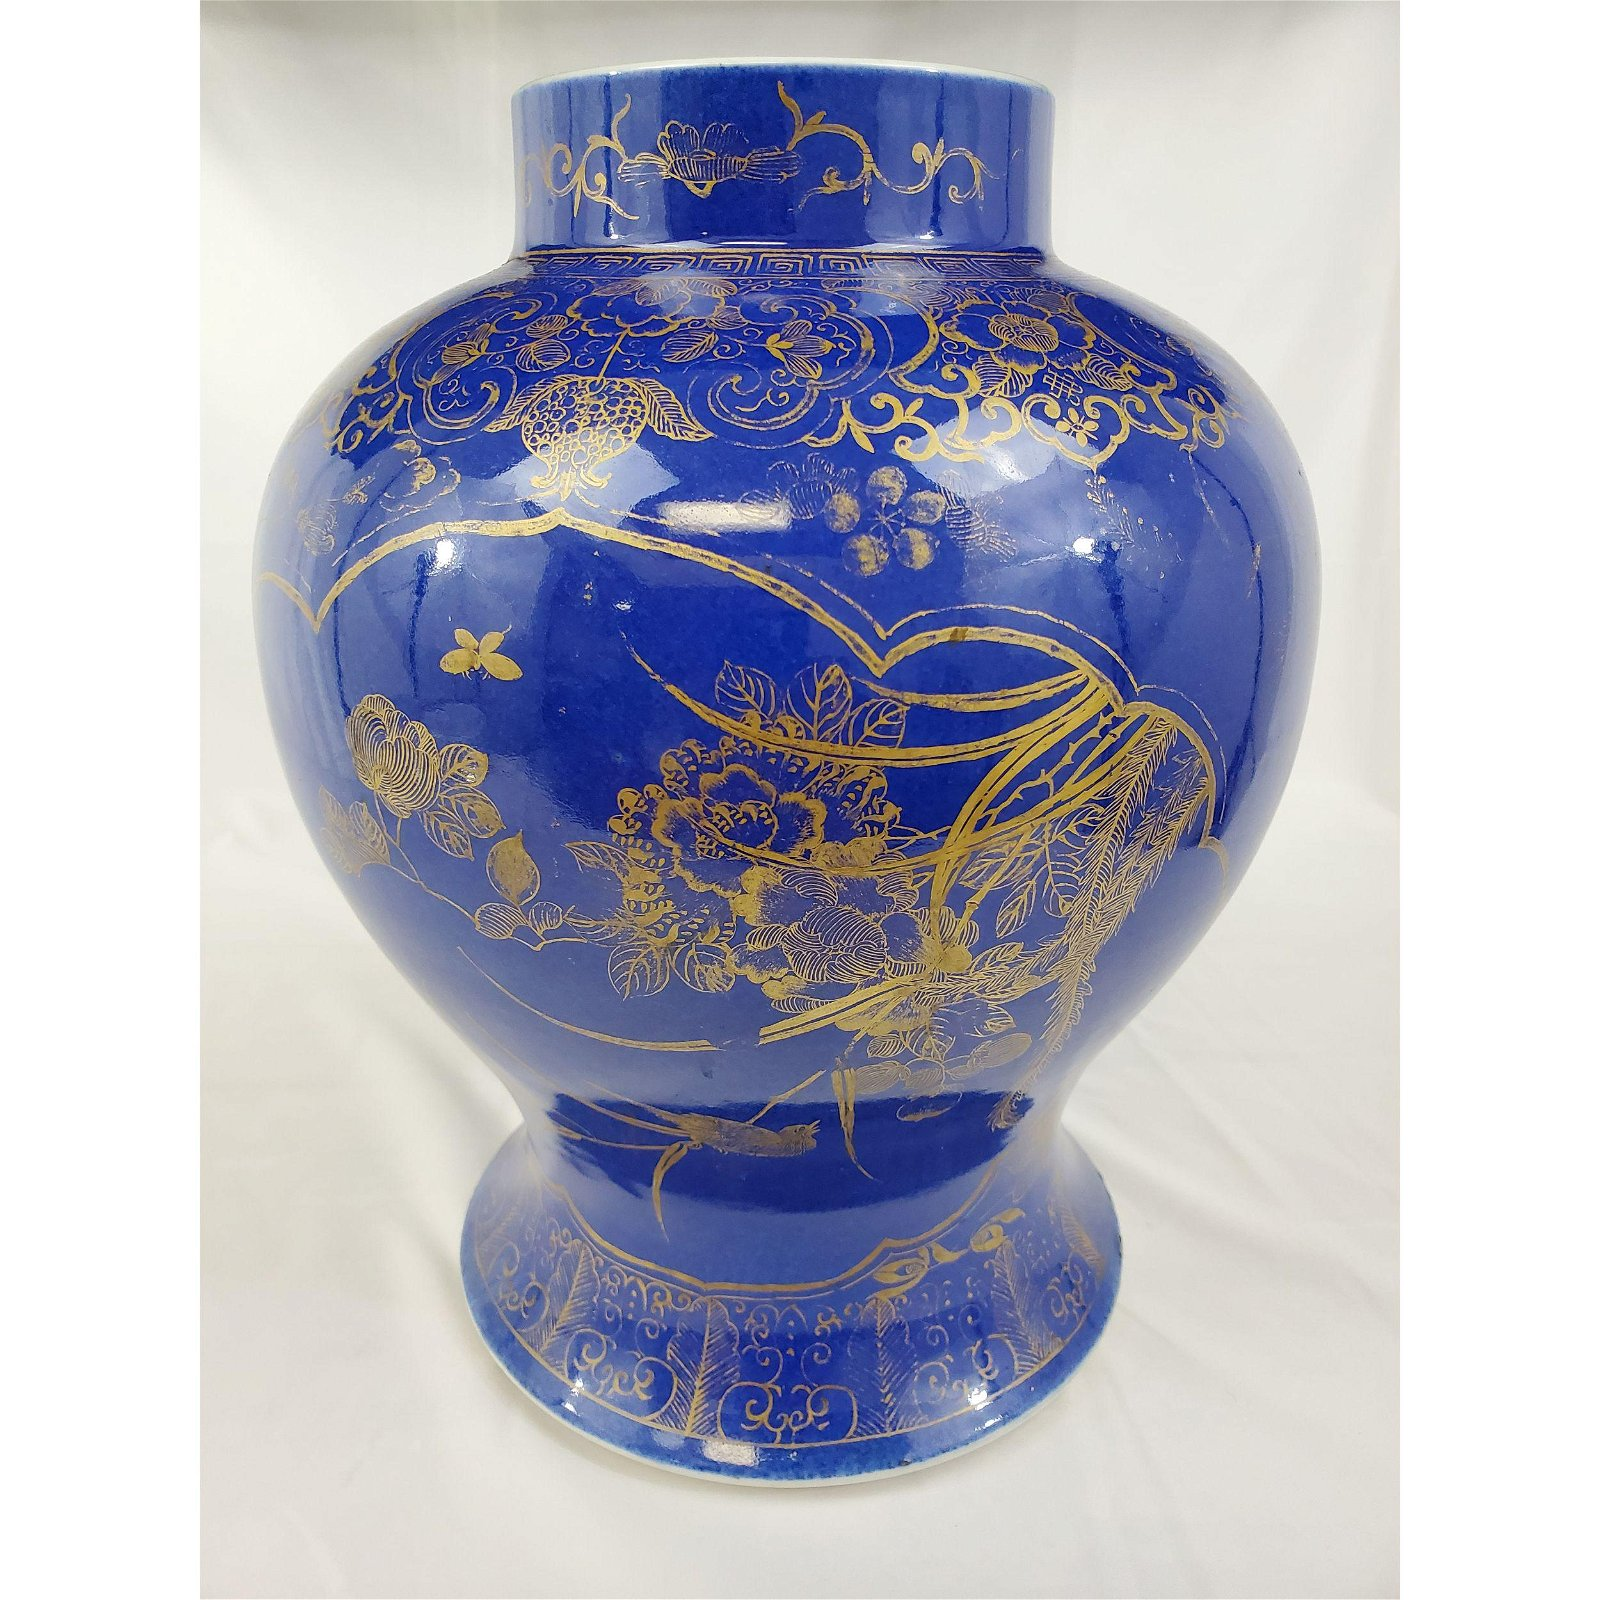 A blue monochrome and gilt Chinese porcelain vase 19 C